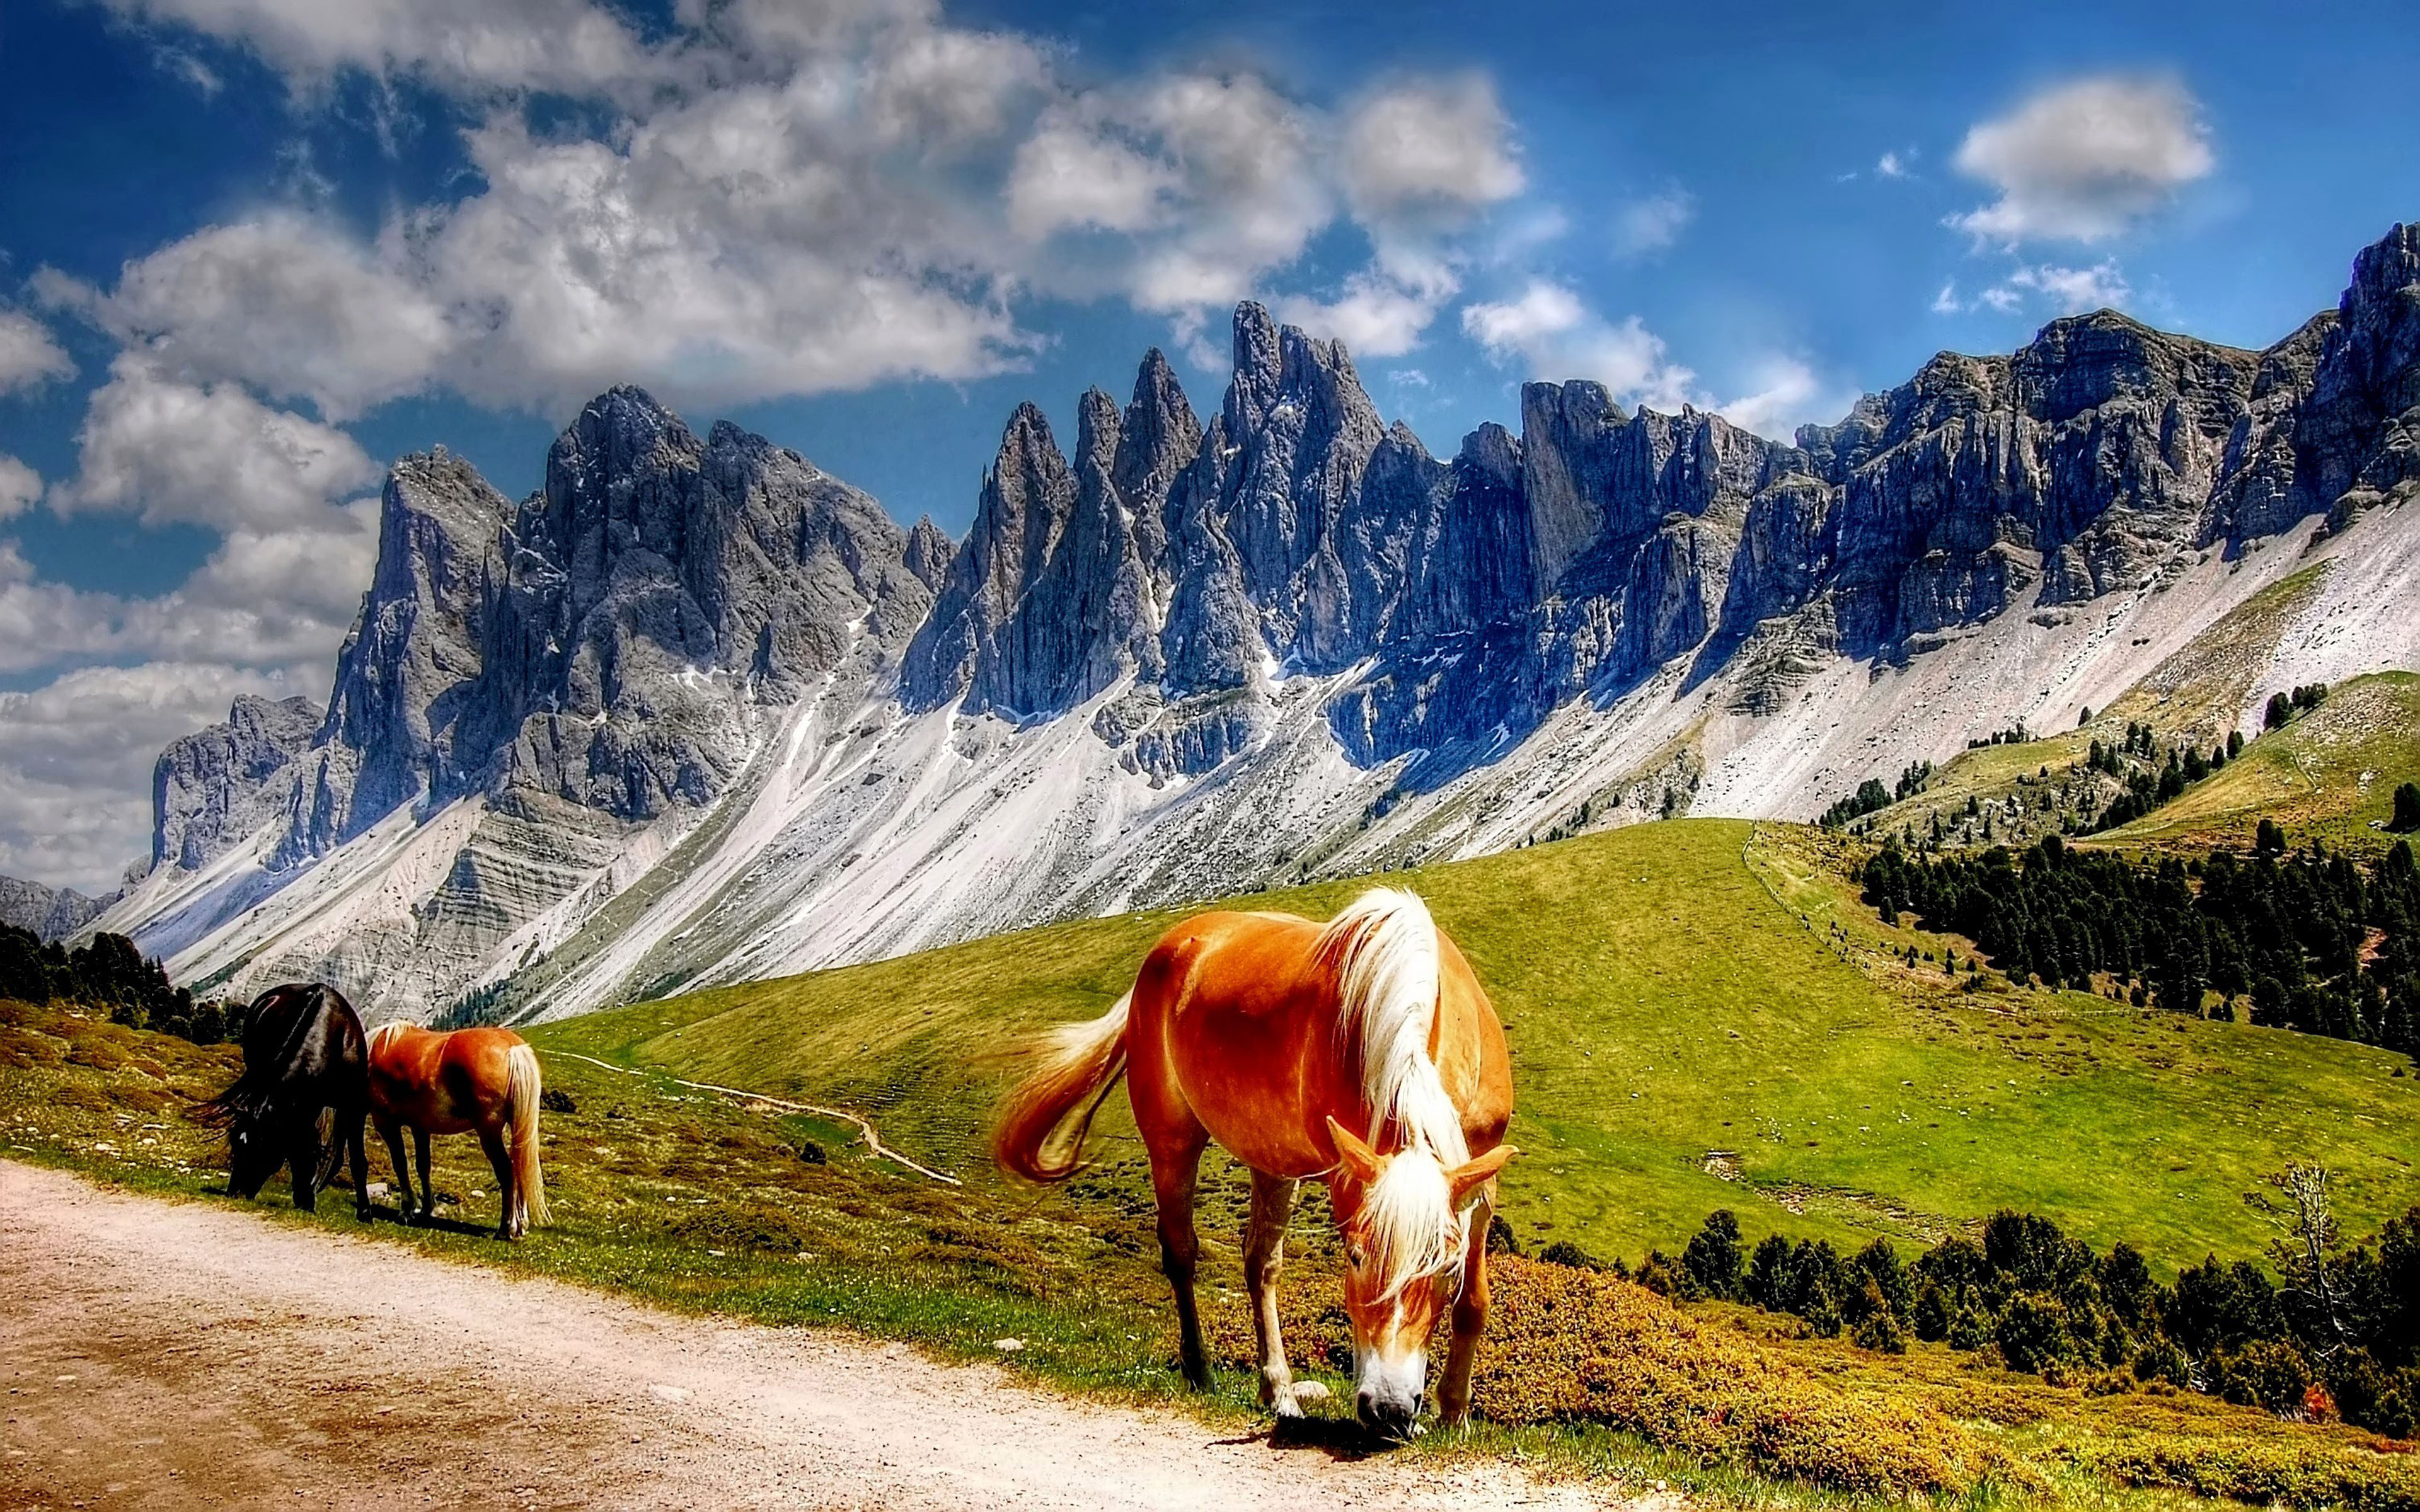 Fall Woodsy Pc Wallpaper Horses In The Dolomites Mountains Italy South Tyrol